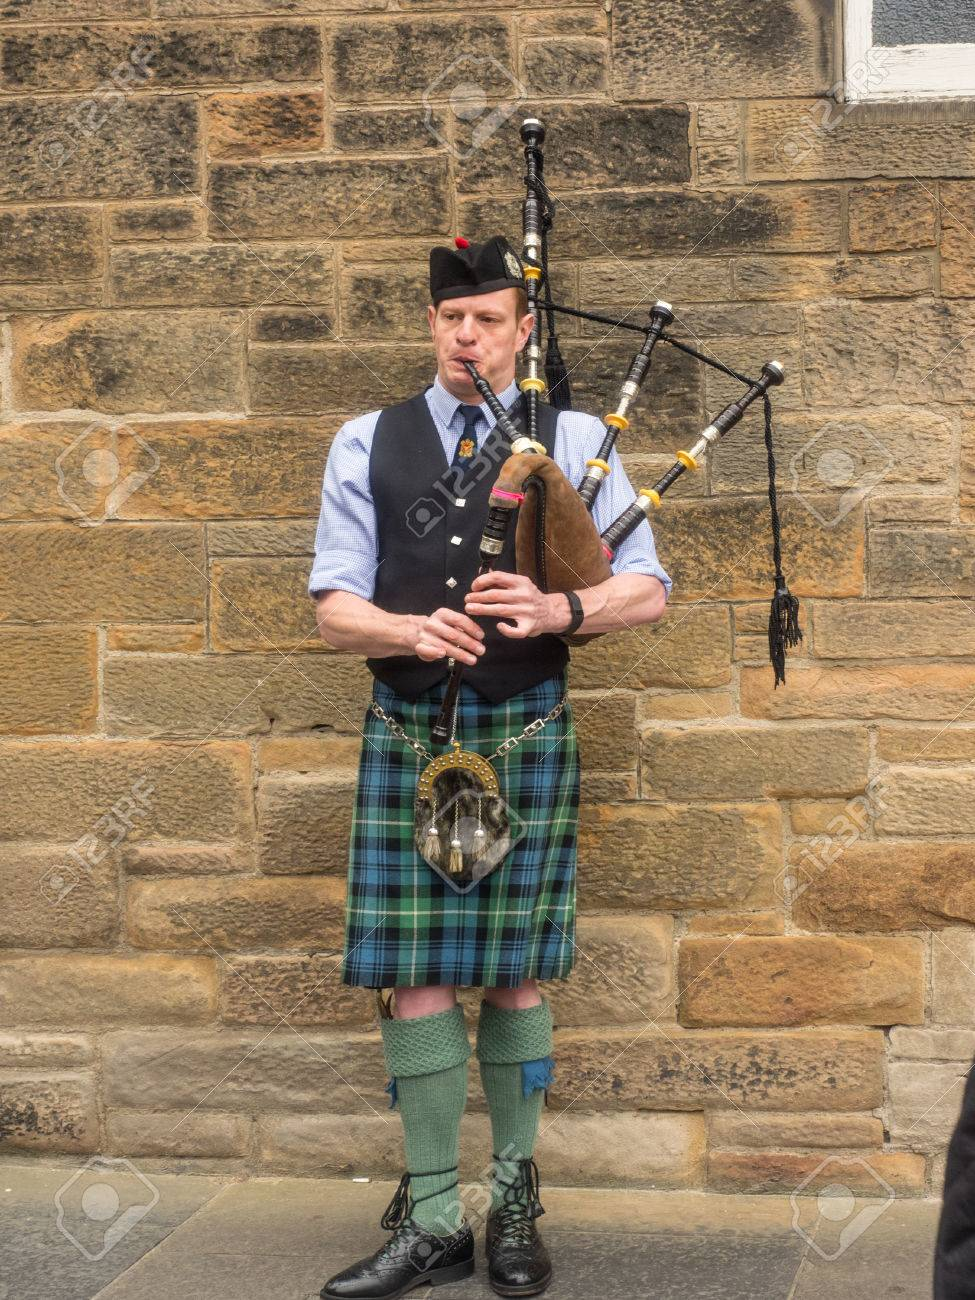 7b95999ced Bagpiper busking with the Great Highland bagpipe on the street in  Edinburgh